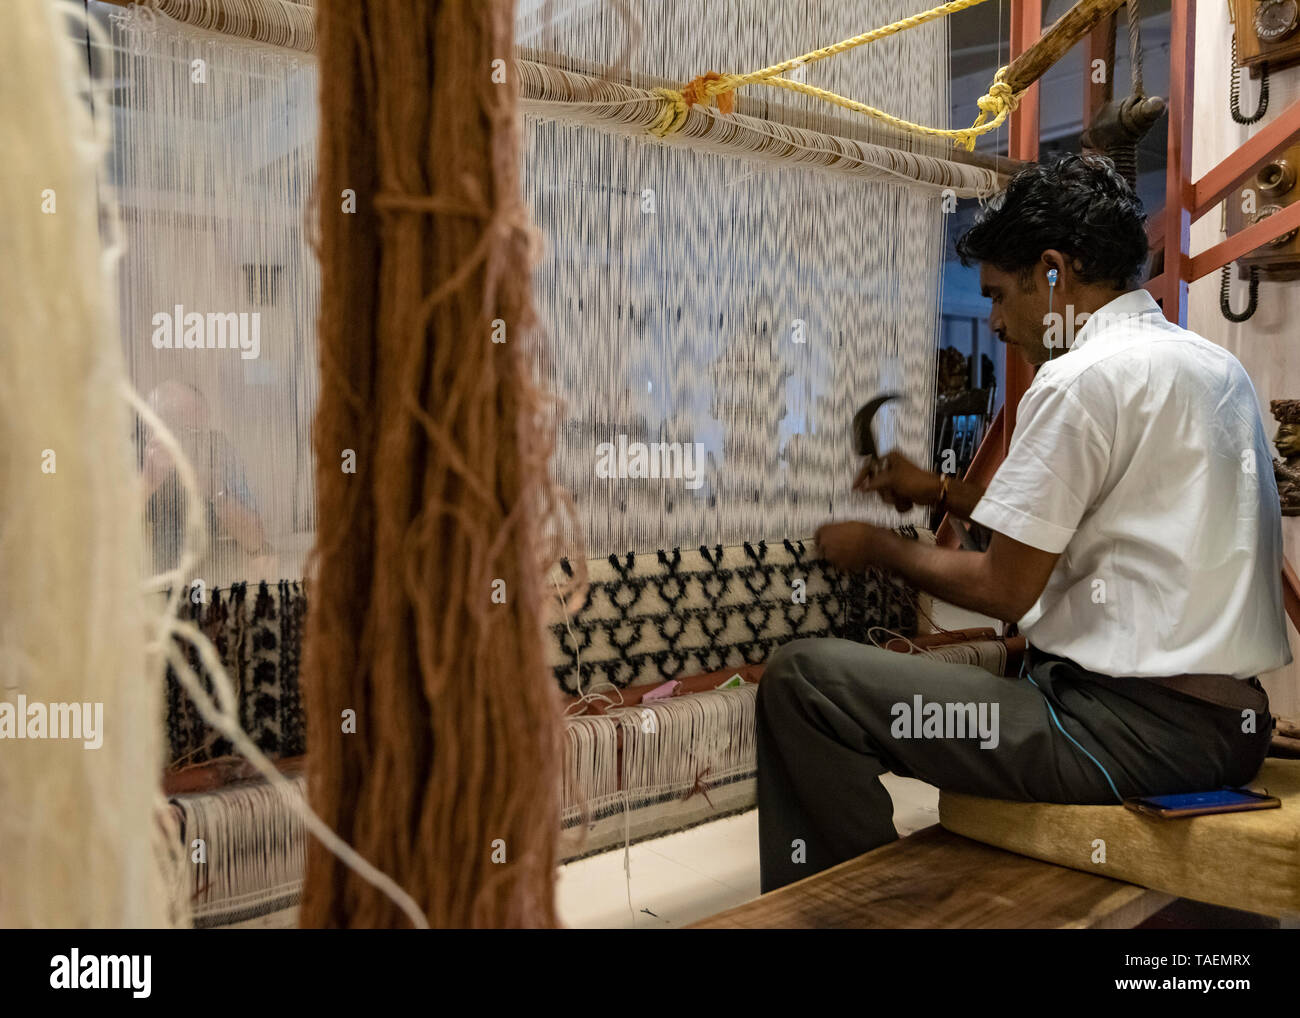 Horizontal view of a man listening to his iphone whilst using an old fashioned vertical loom in India. - Stock Image